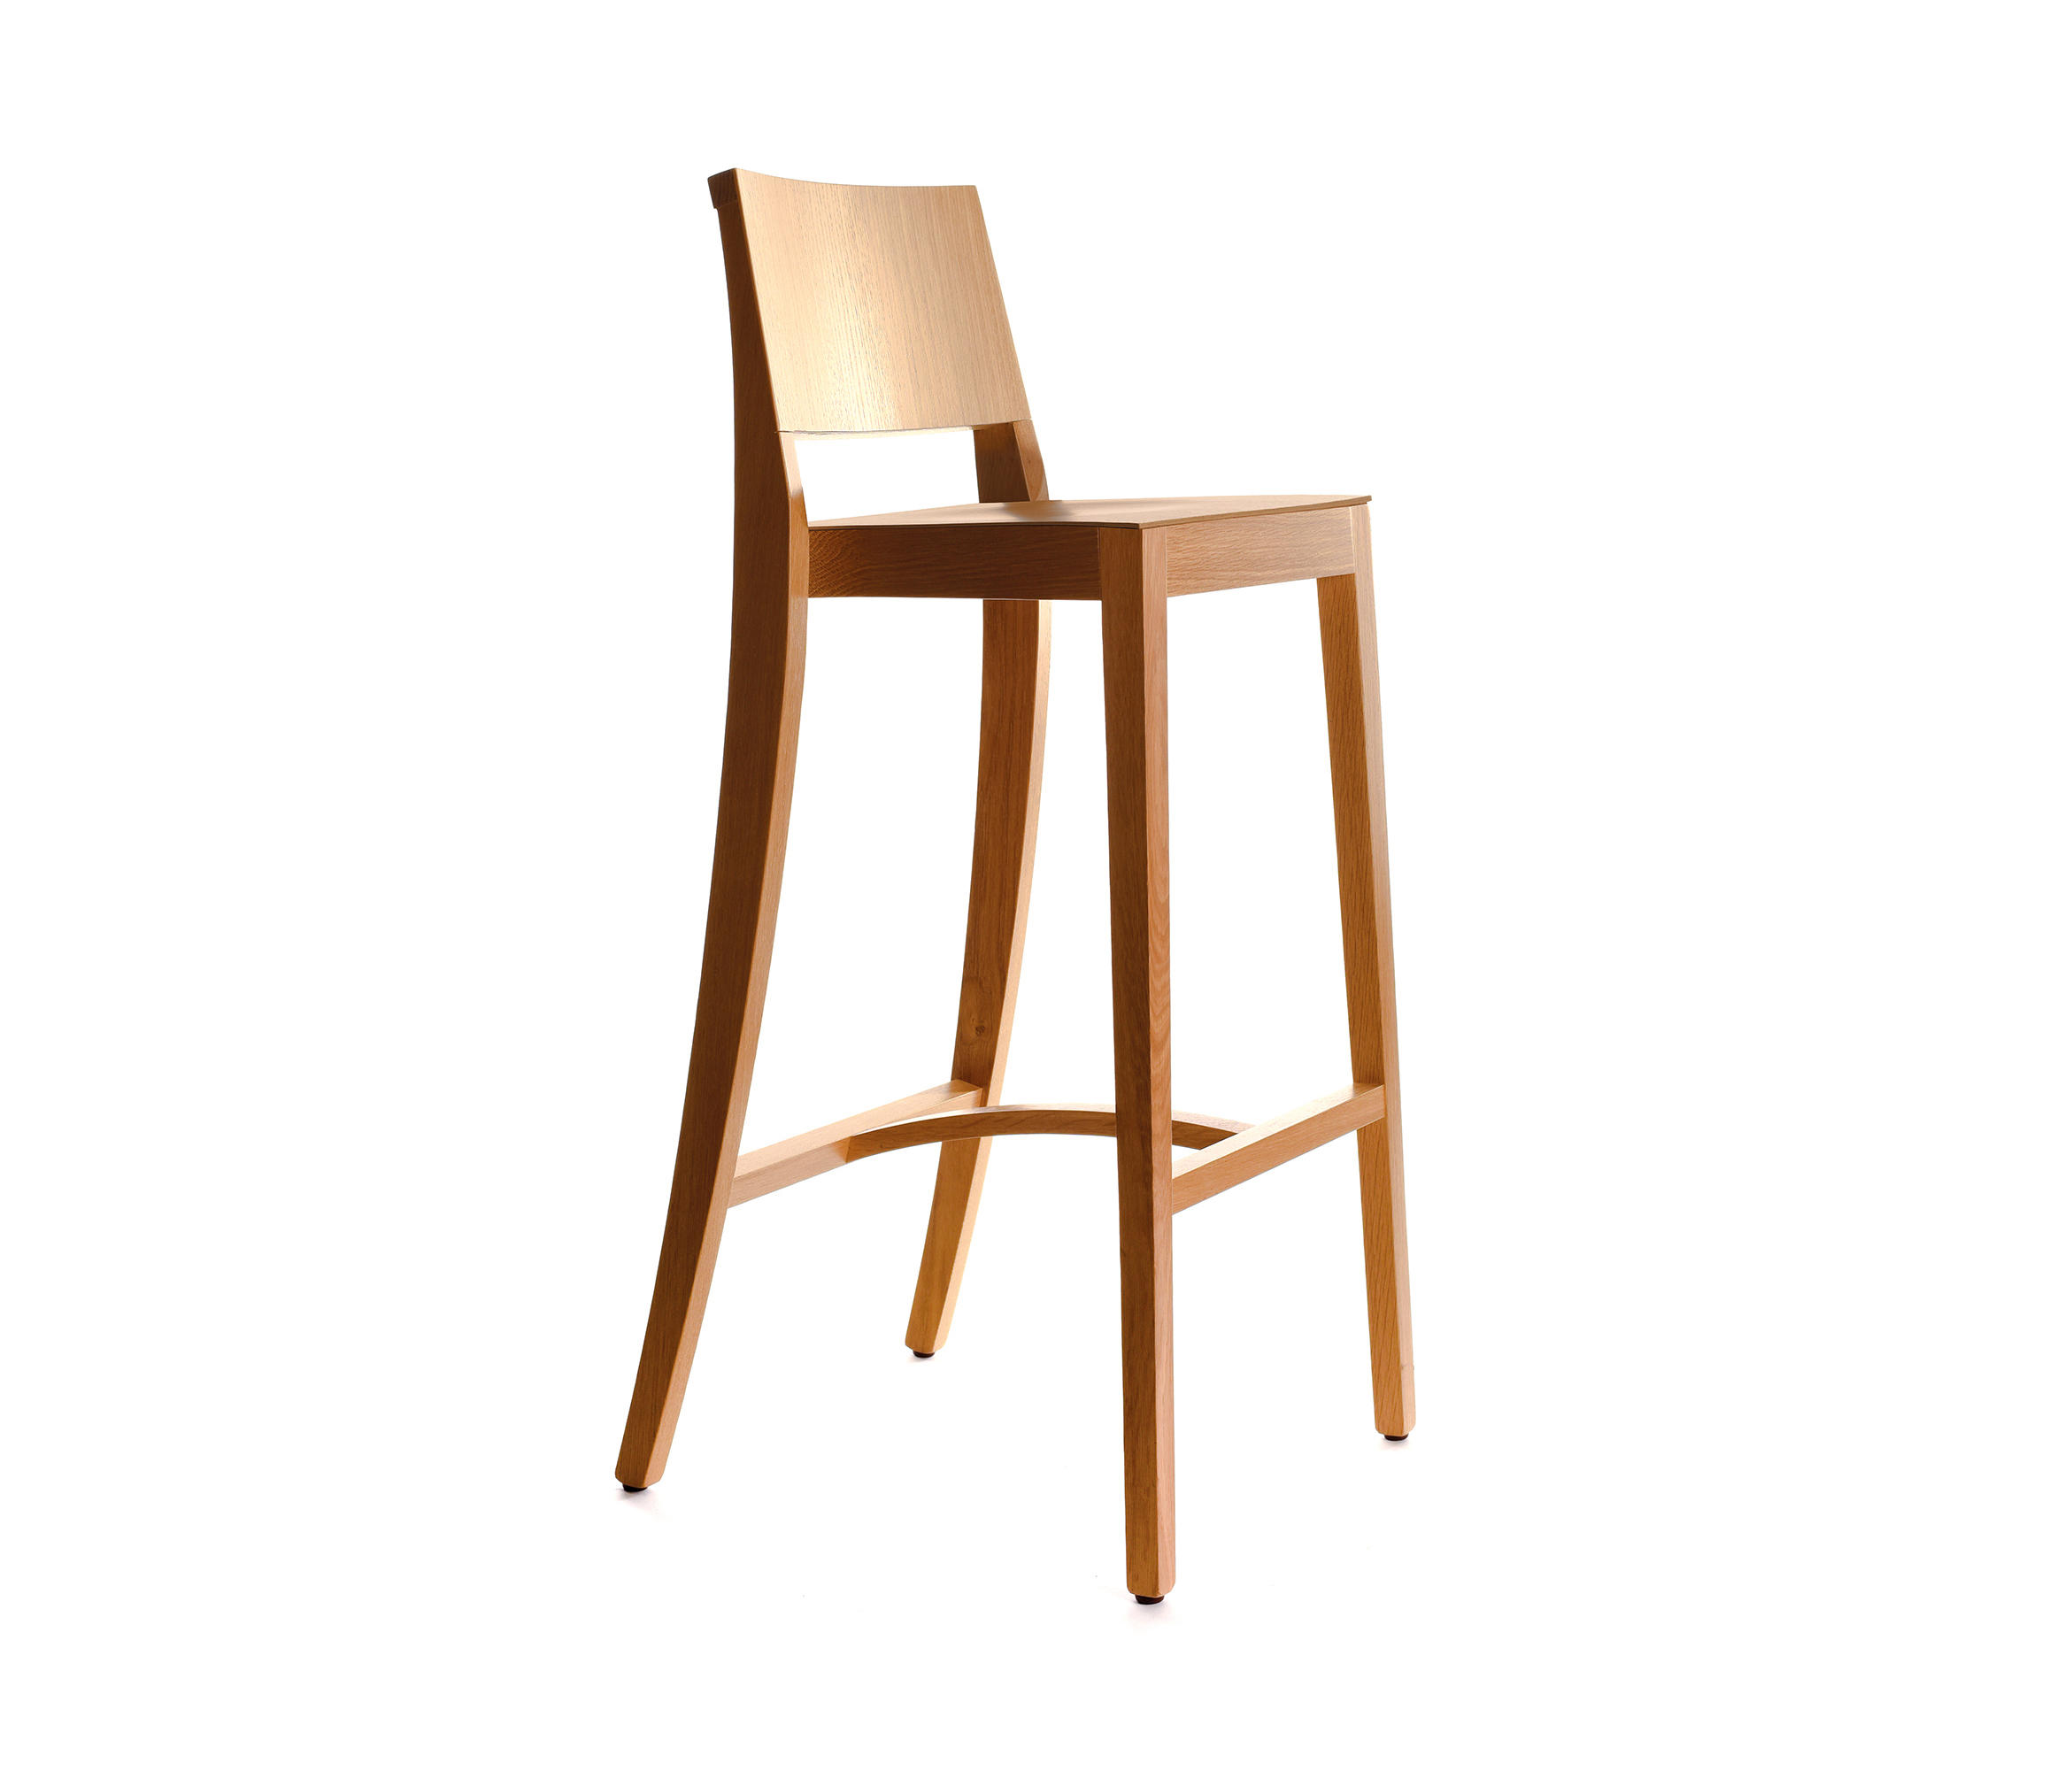 Holz barstuhl osiris bar stools from manufakt architonic for Barstuhl holz